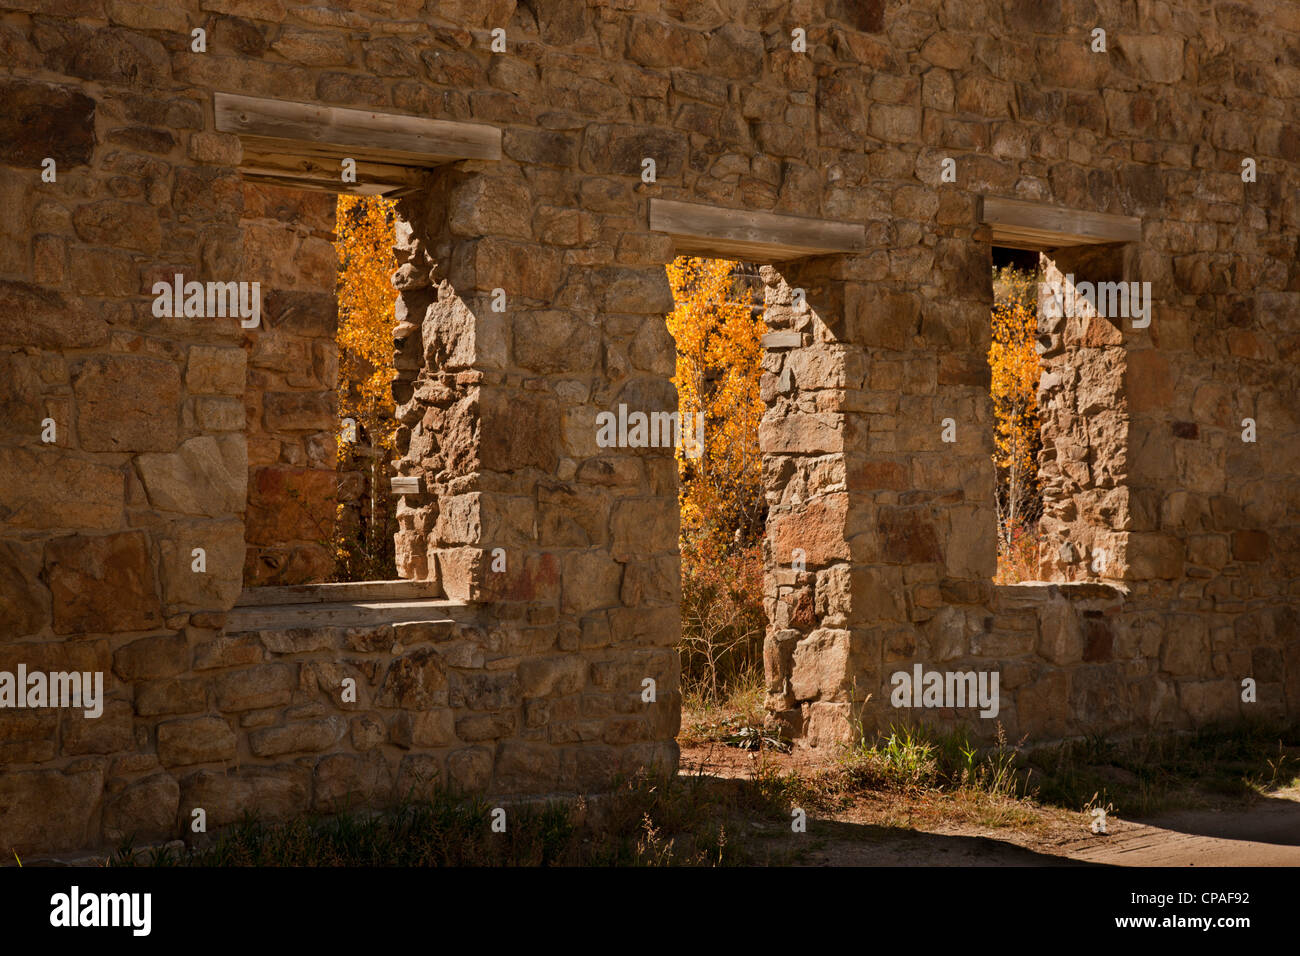 USA, Colorado, Central City. Aspen trees inside abandoned stone building.   Credit as - Stock Image